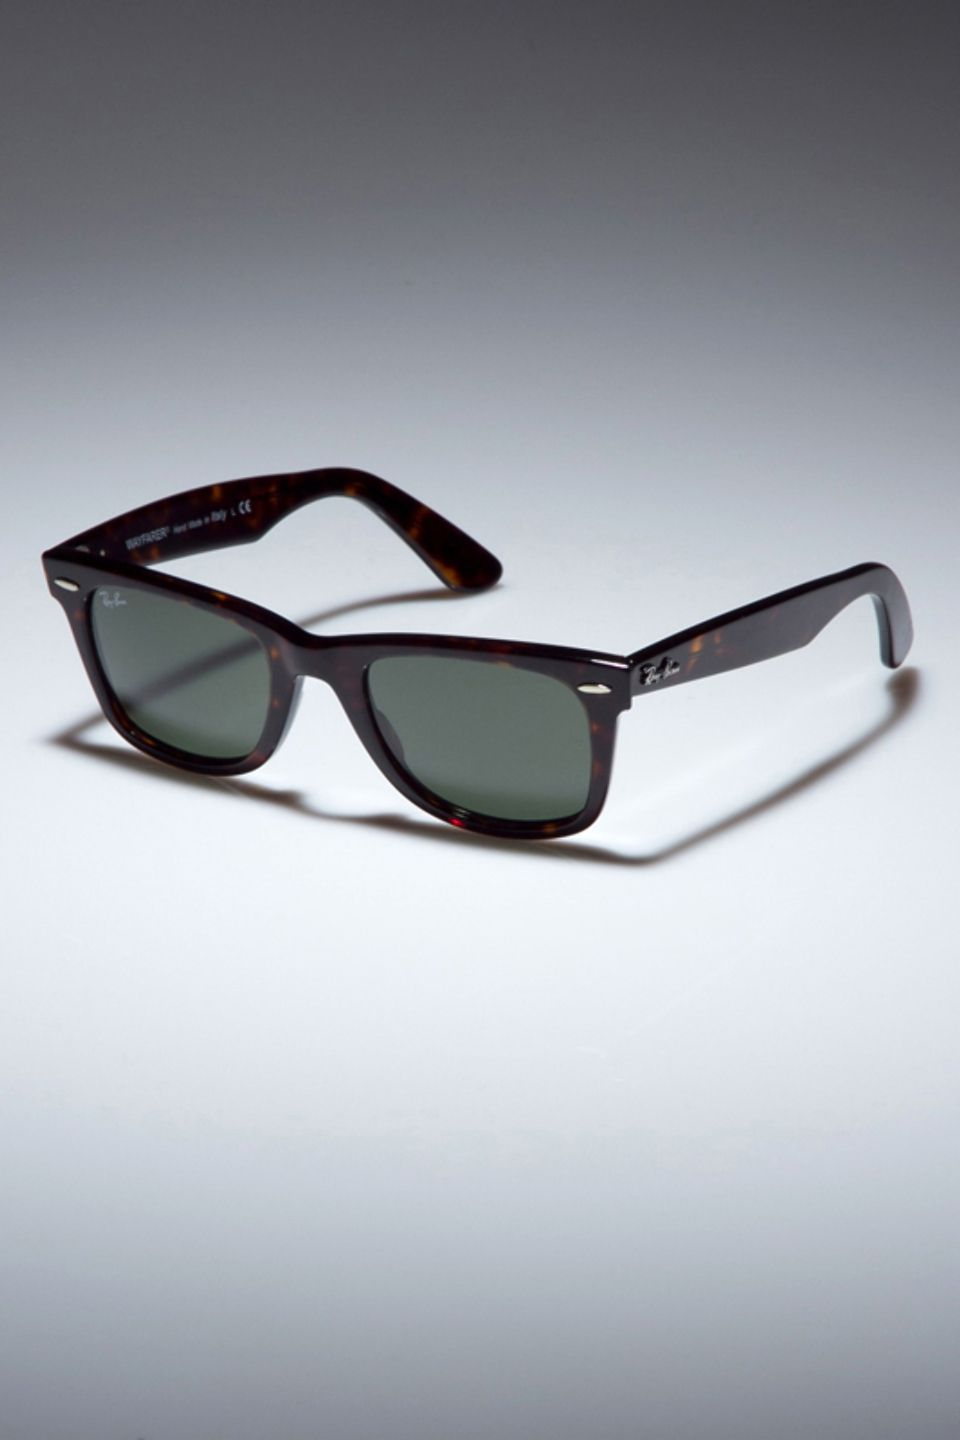 5163d2d8cf Ray Ban Medium Original Wayfarer In Tortoiseshell